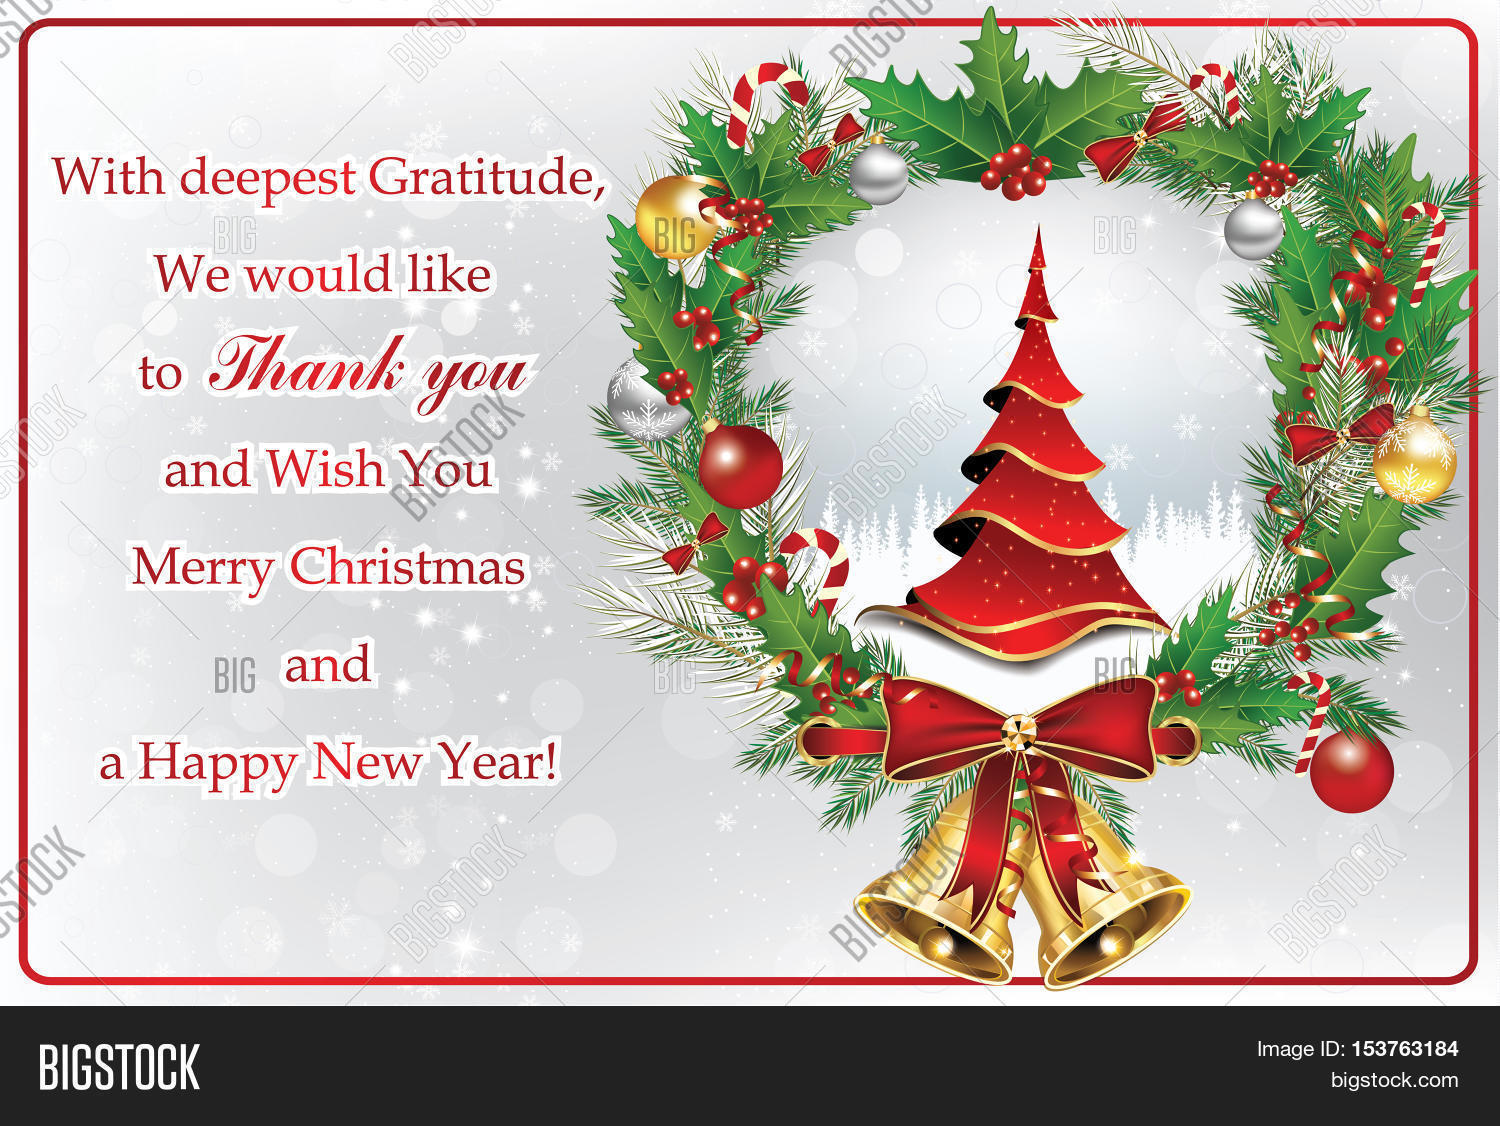 Thank You Business Greeting Card Image & Photo | Bigstock